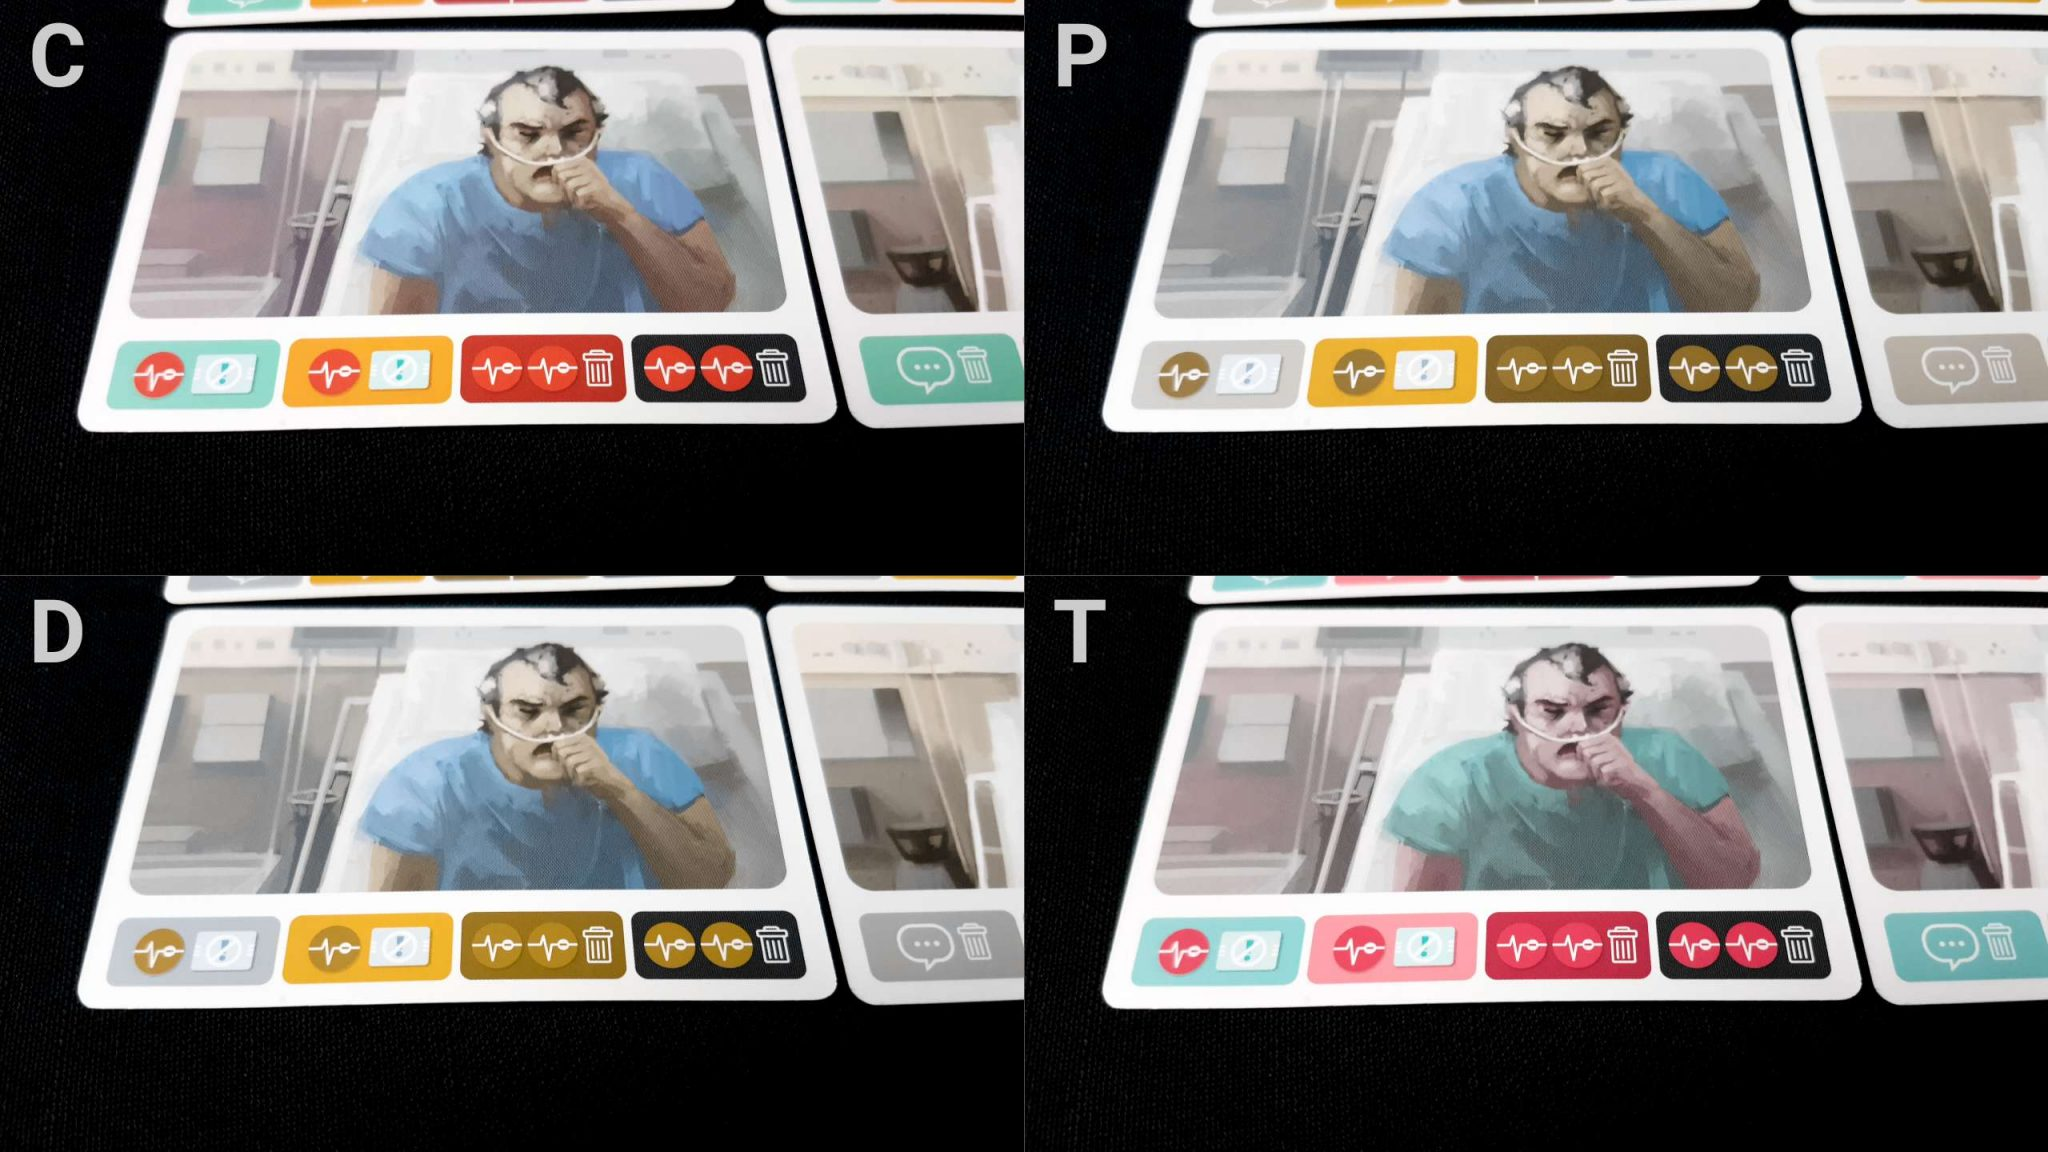 Colour blindness icons on cards